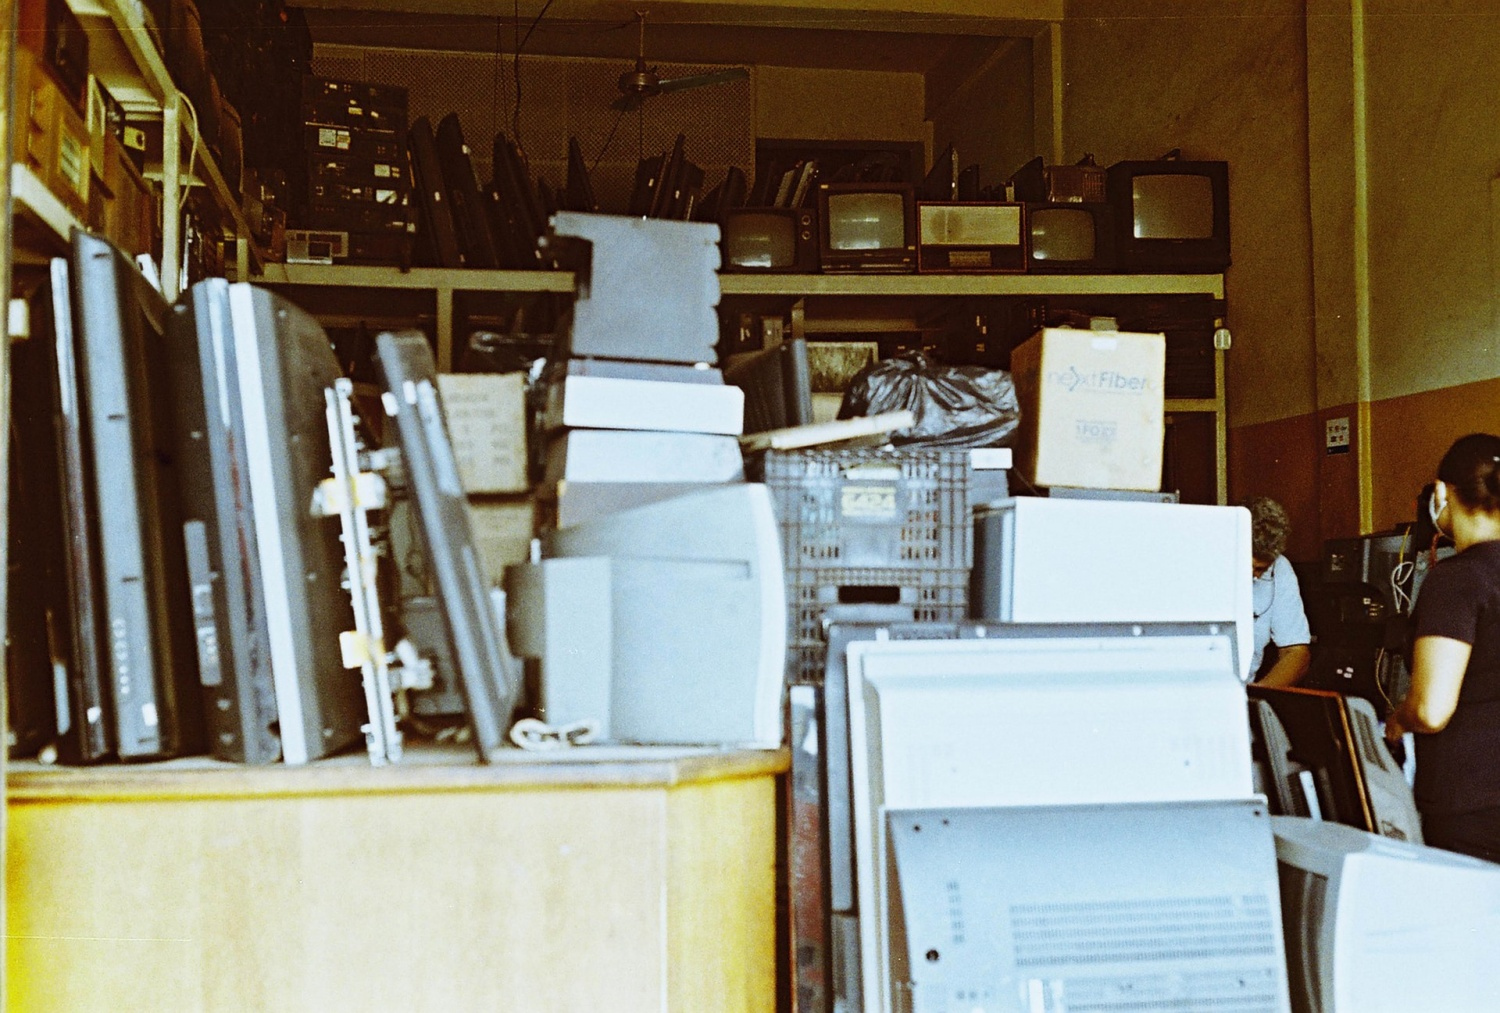 2021 E-Waste Surges at 57.4 Million Tons with Only 17.4% Recycled as Per 2019 Figures